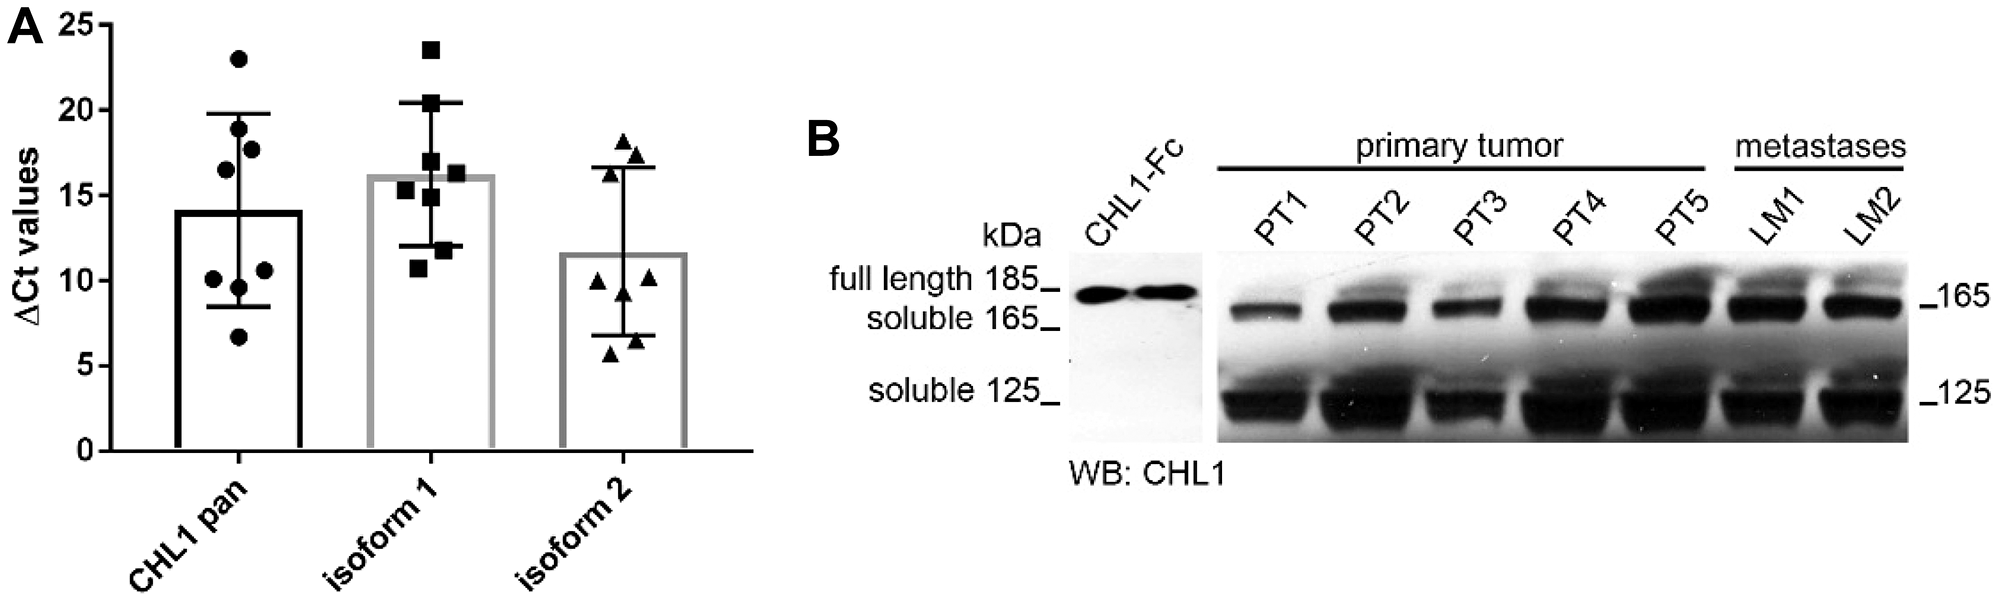 CHL1 expression analysis in GIST.